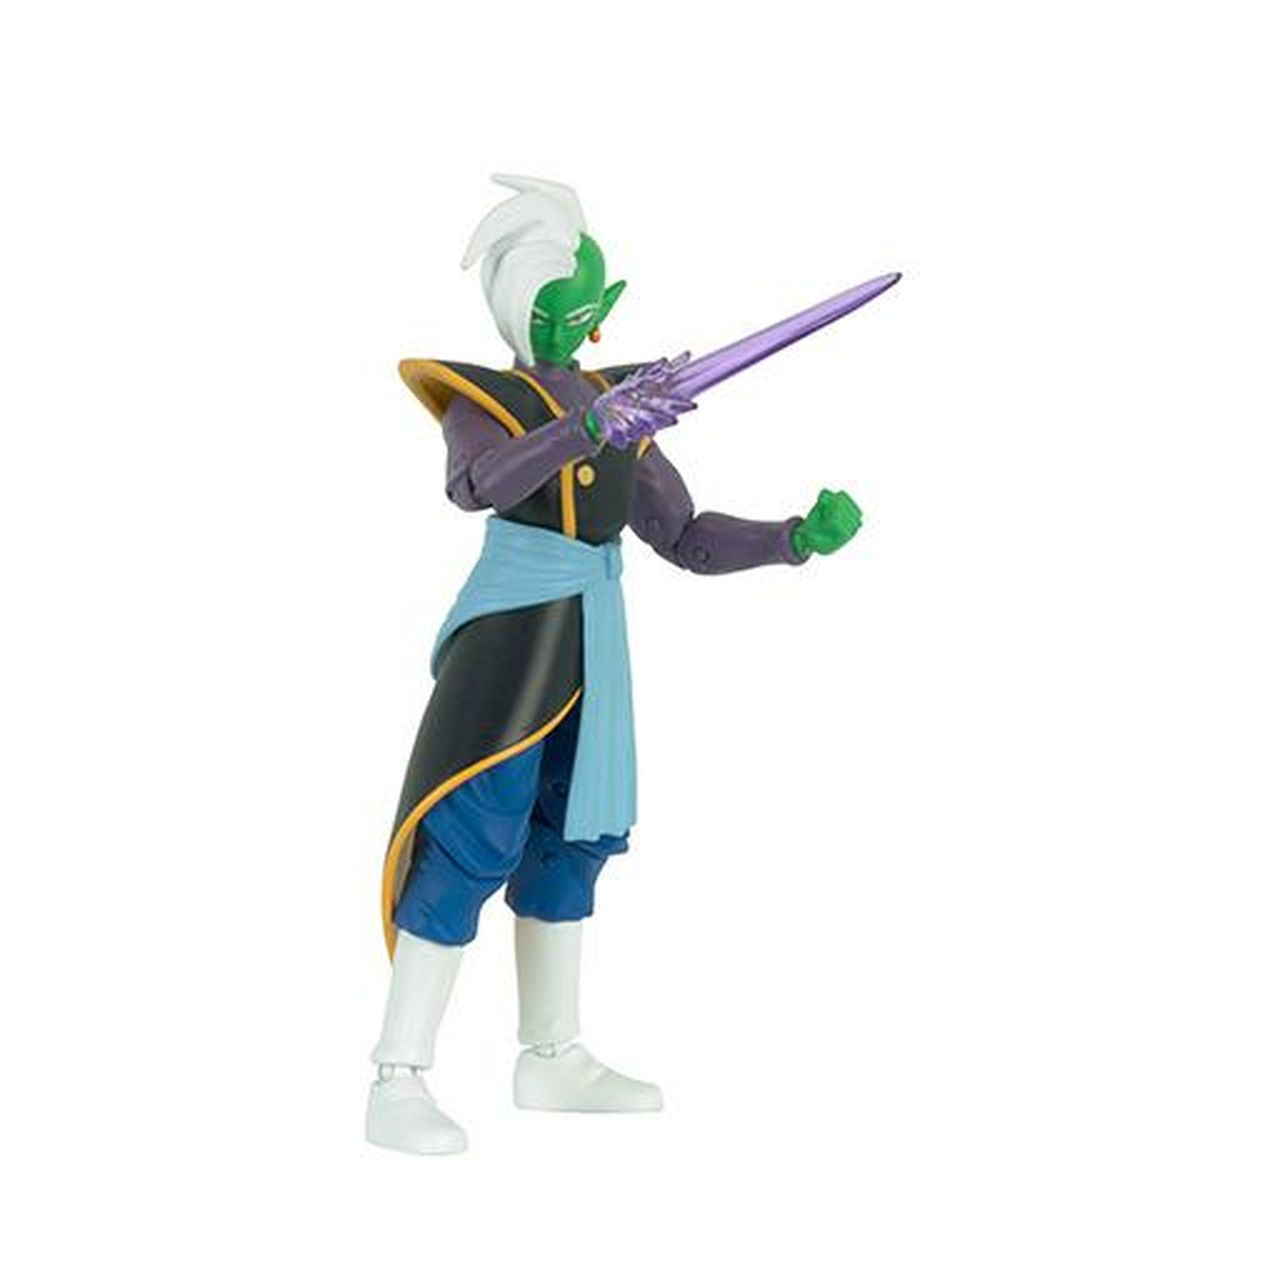 Action Figure Zamasu: Dragon Ball Super (Dragon Stars Series) Boneco Colecionável - Bandai